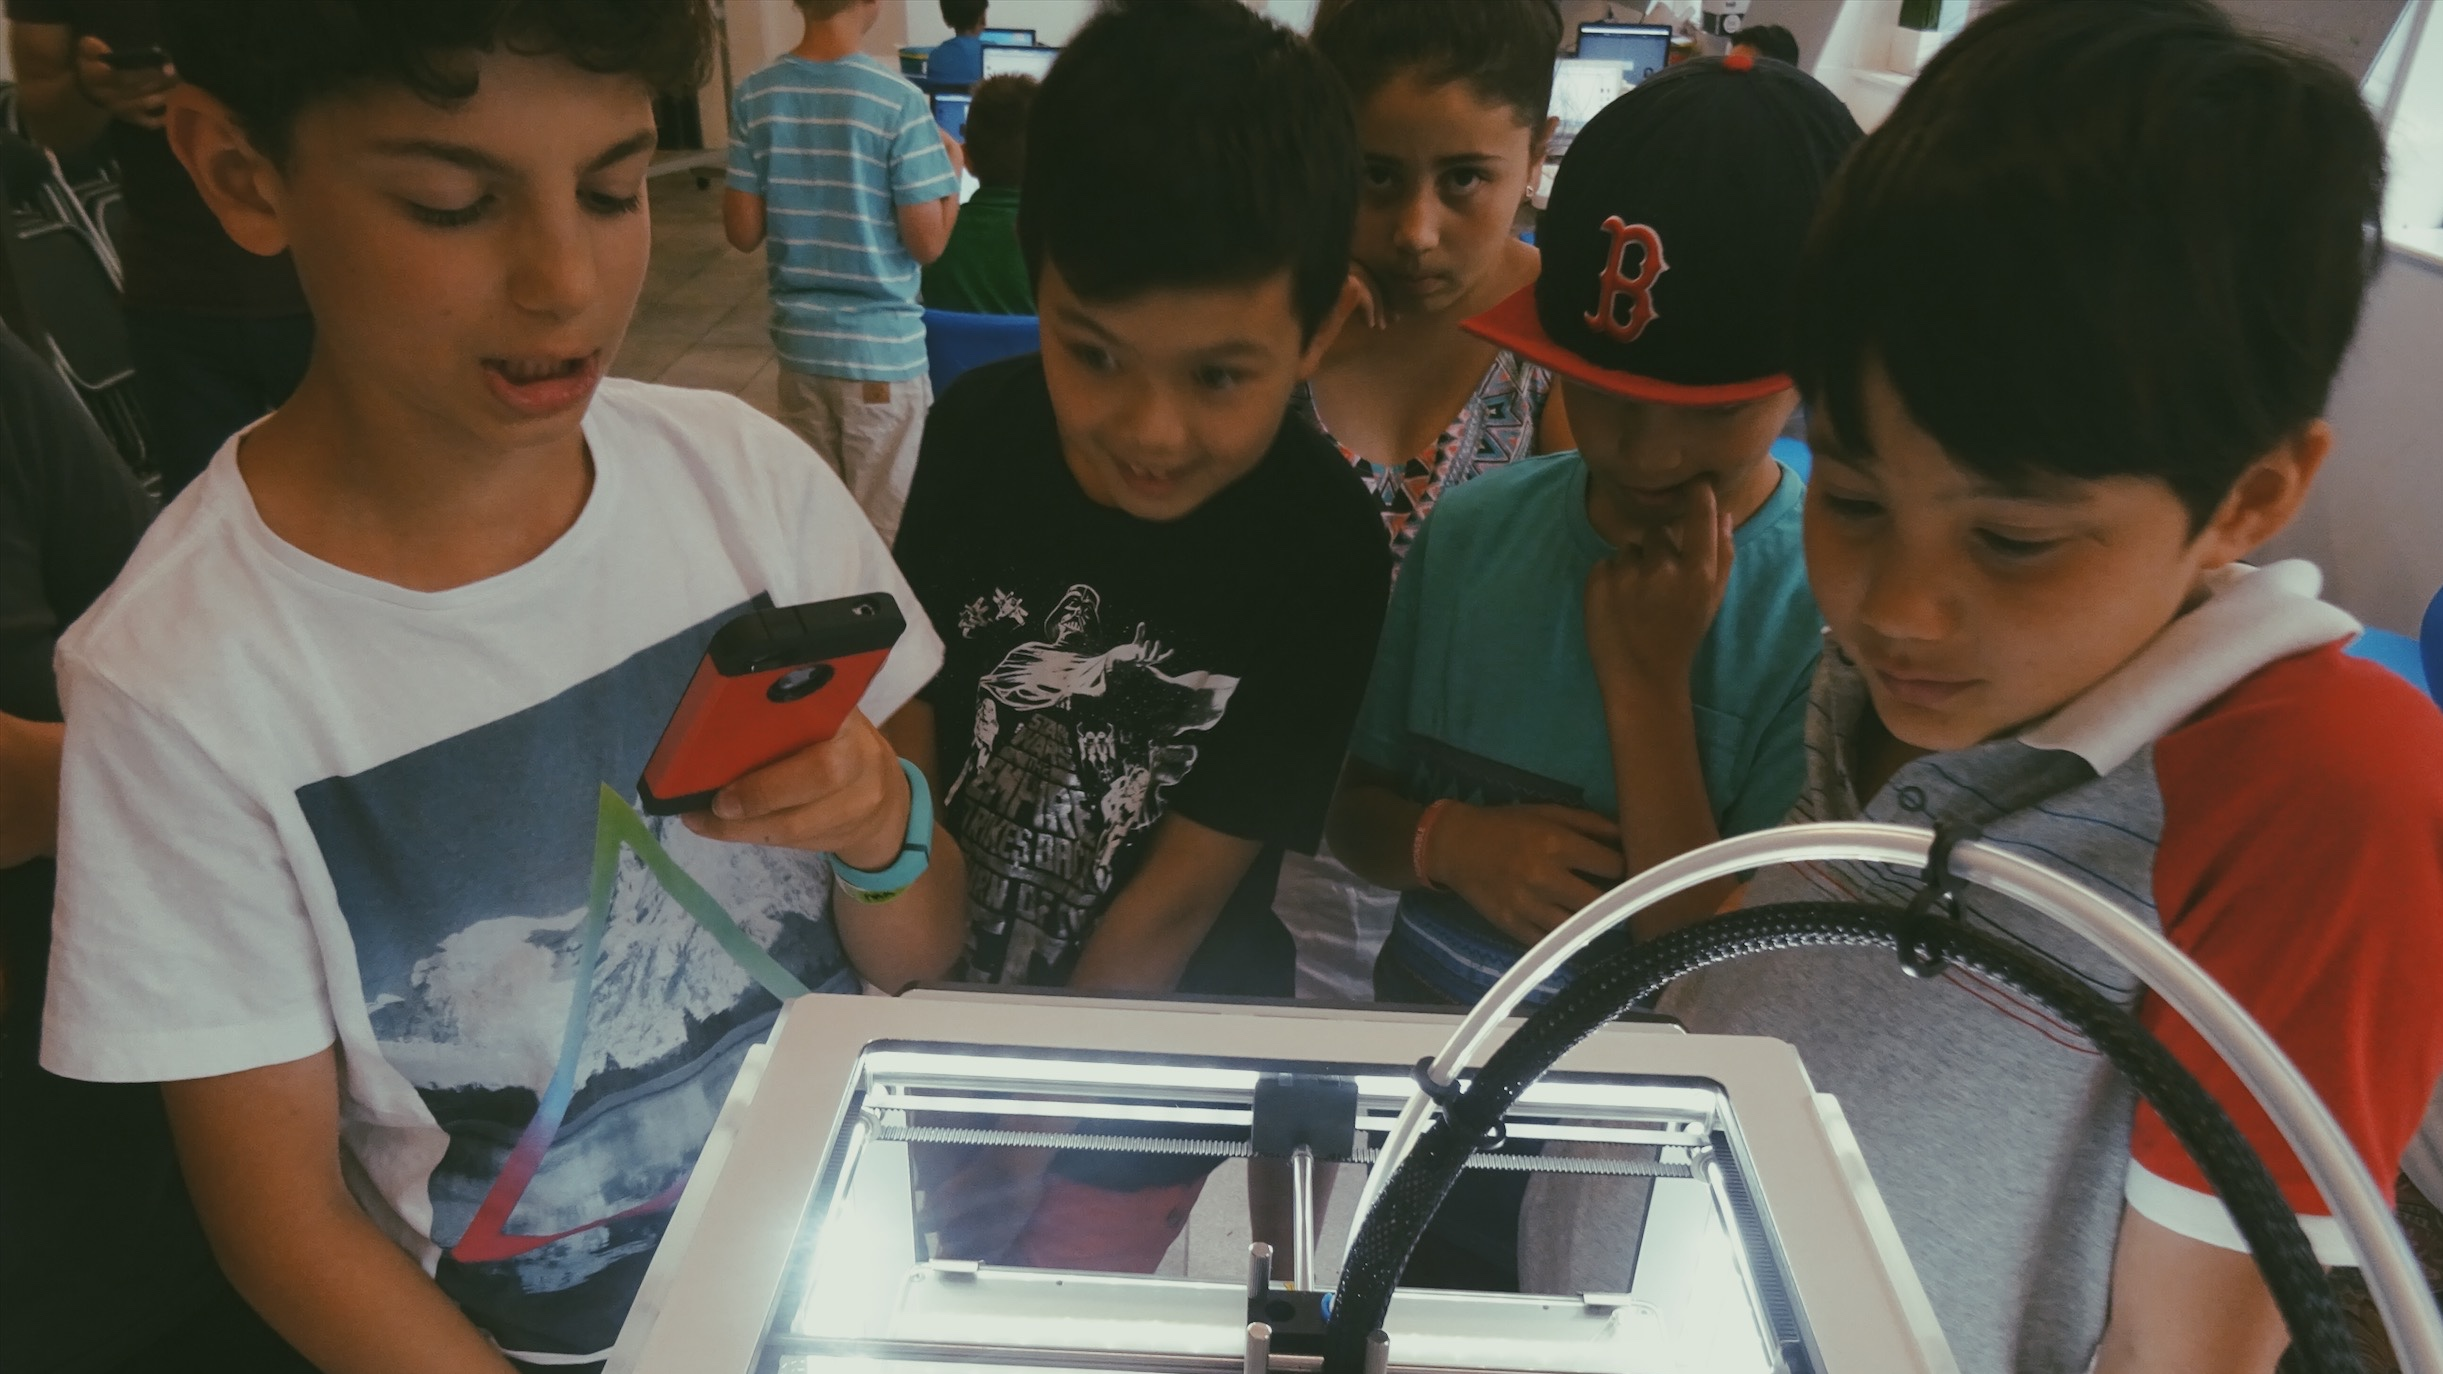 Lemonade Stand Kids AR: kids looking at a 3D printer